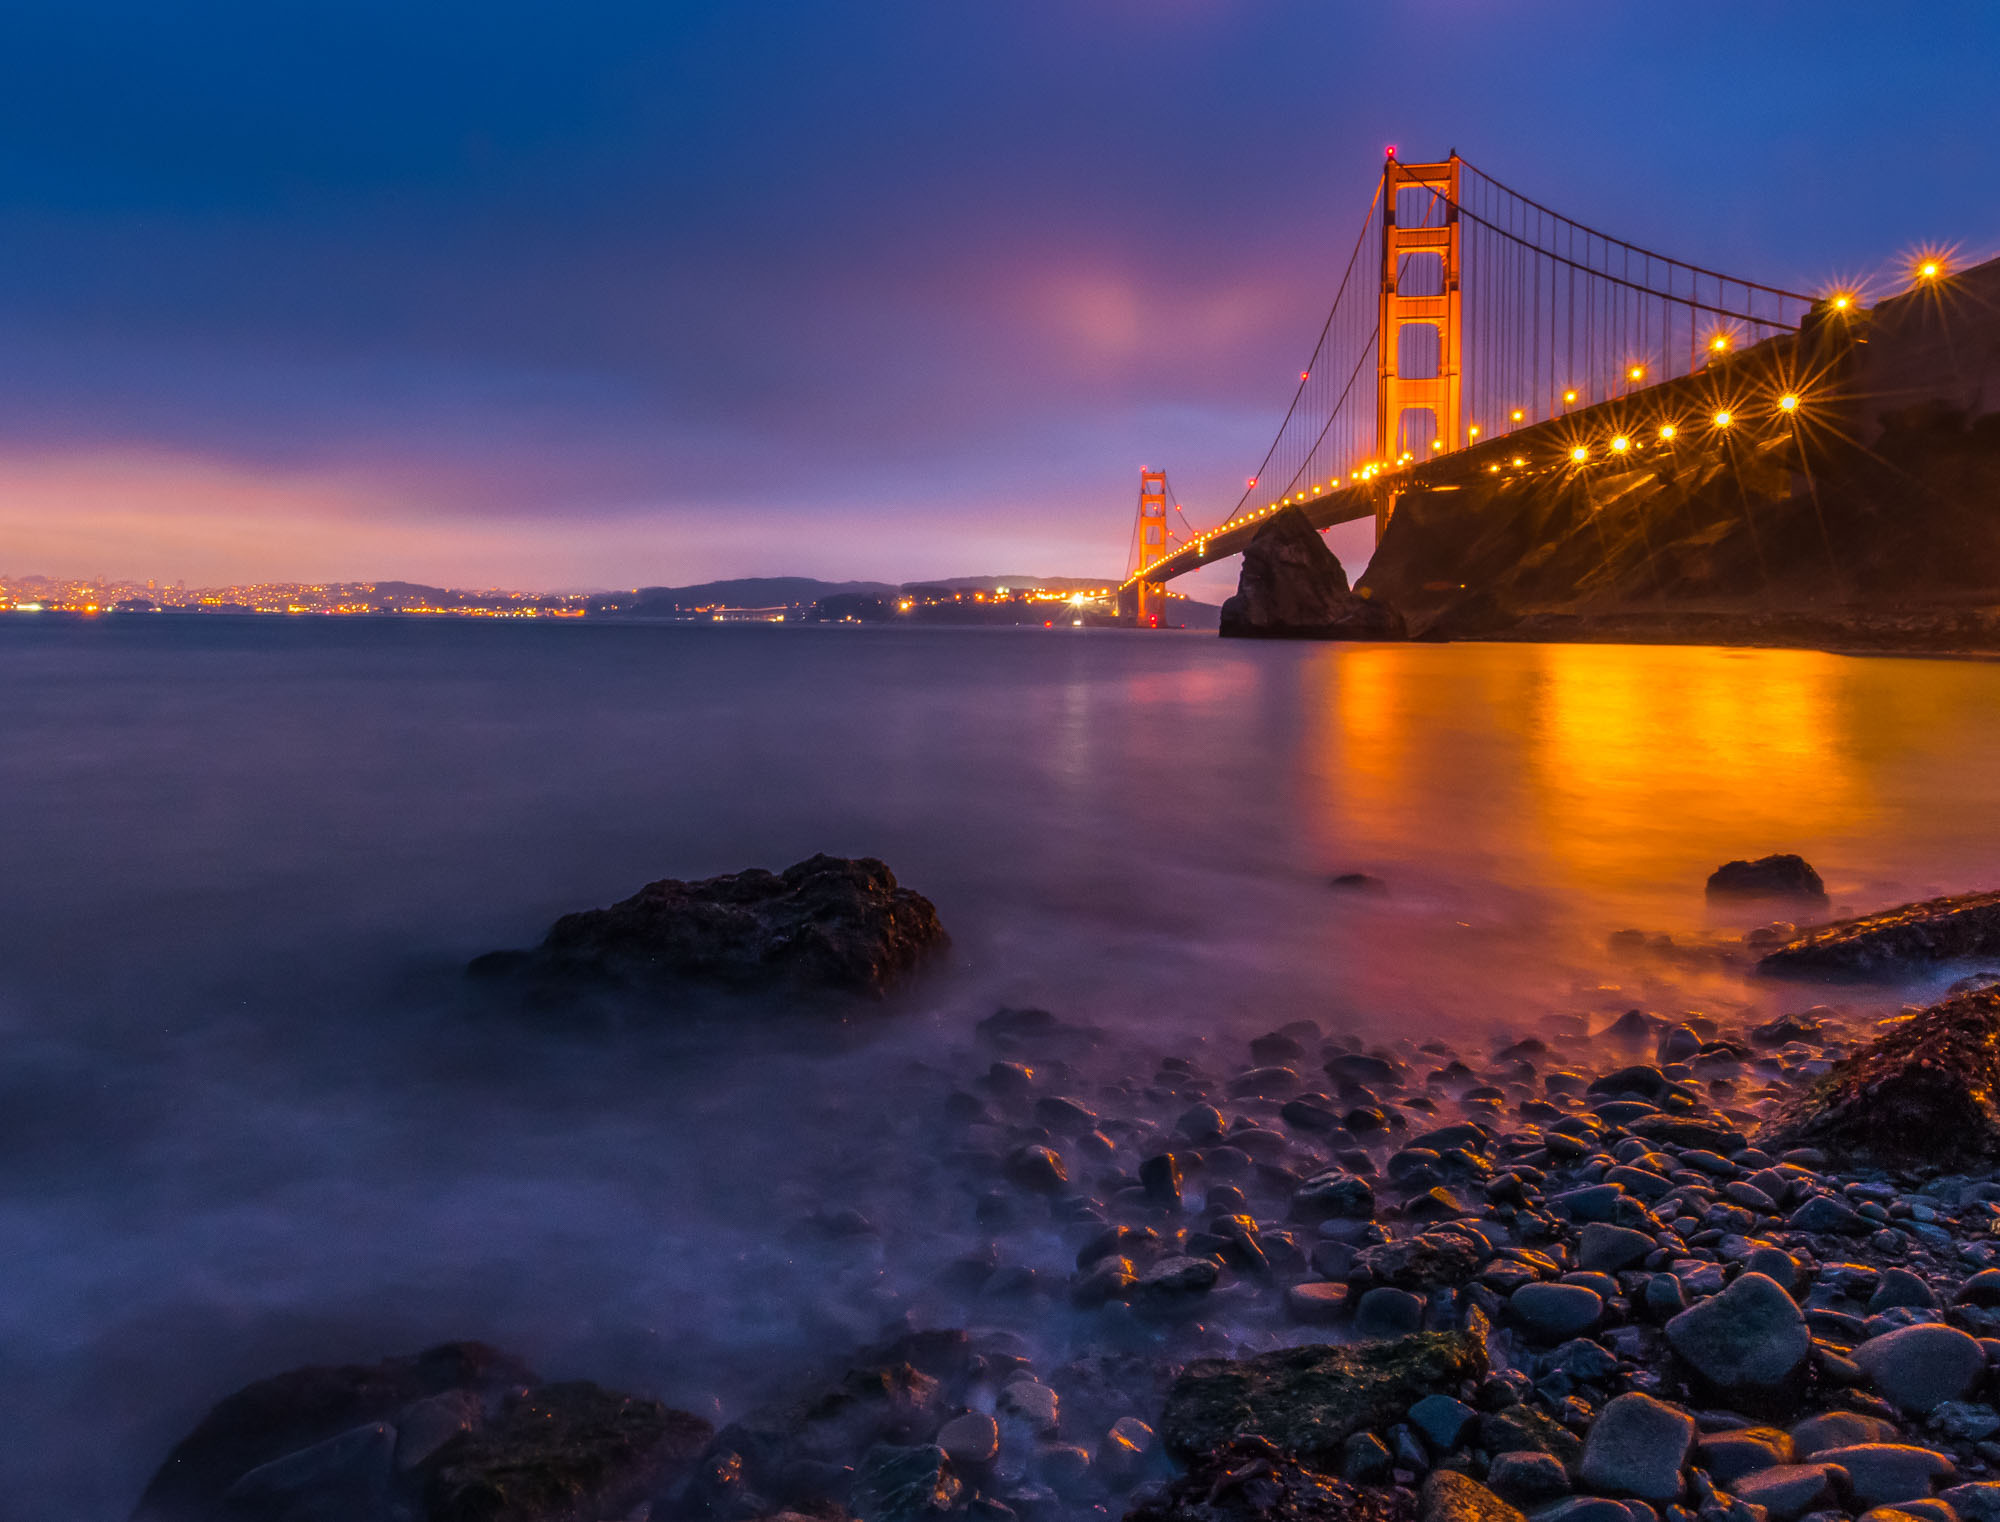 Adam Jacobs Golden Gate Bridge Landscape-1.jpg